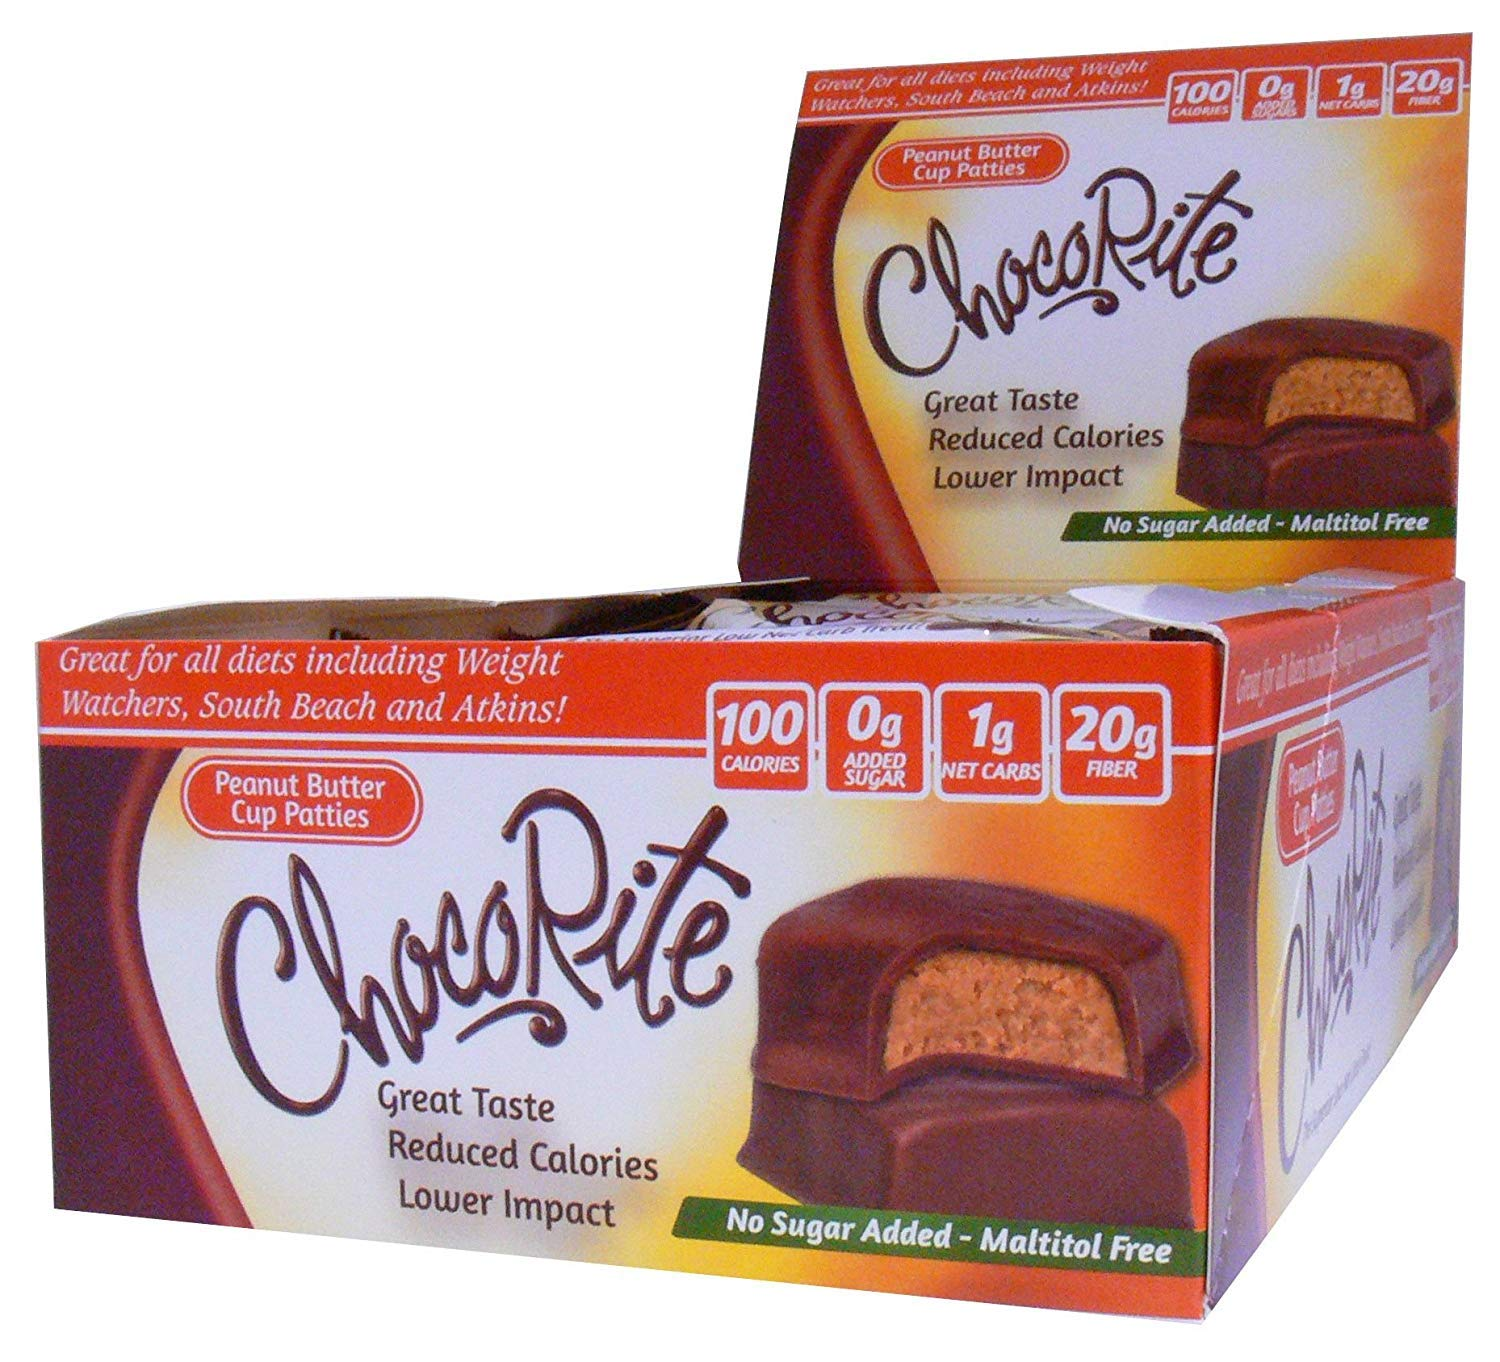 ChocoRite ChocoRite Peanut Butter Cup Patties, Peanut Butter Cup Patties, 18 Ounce (Pack of 16)